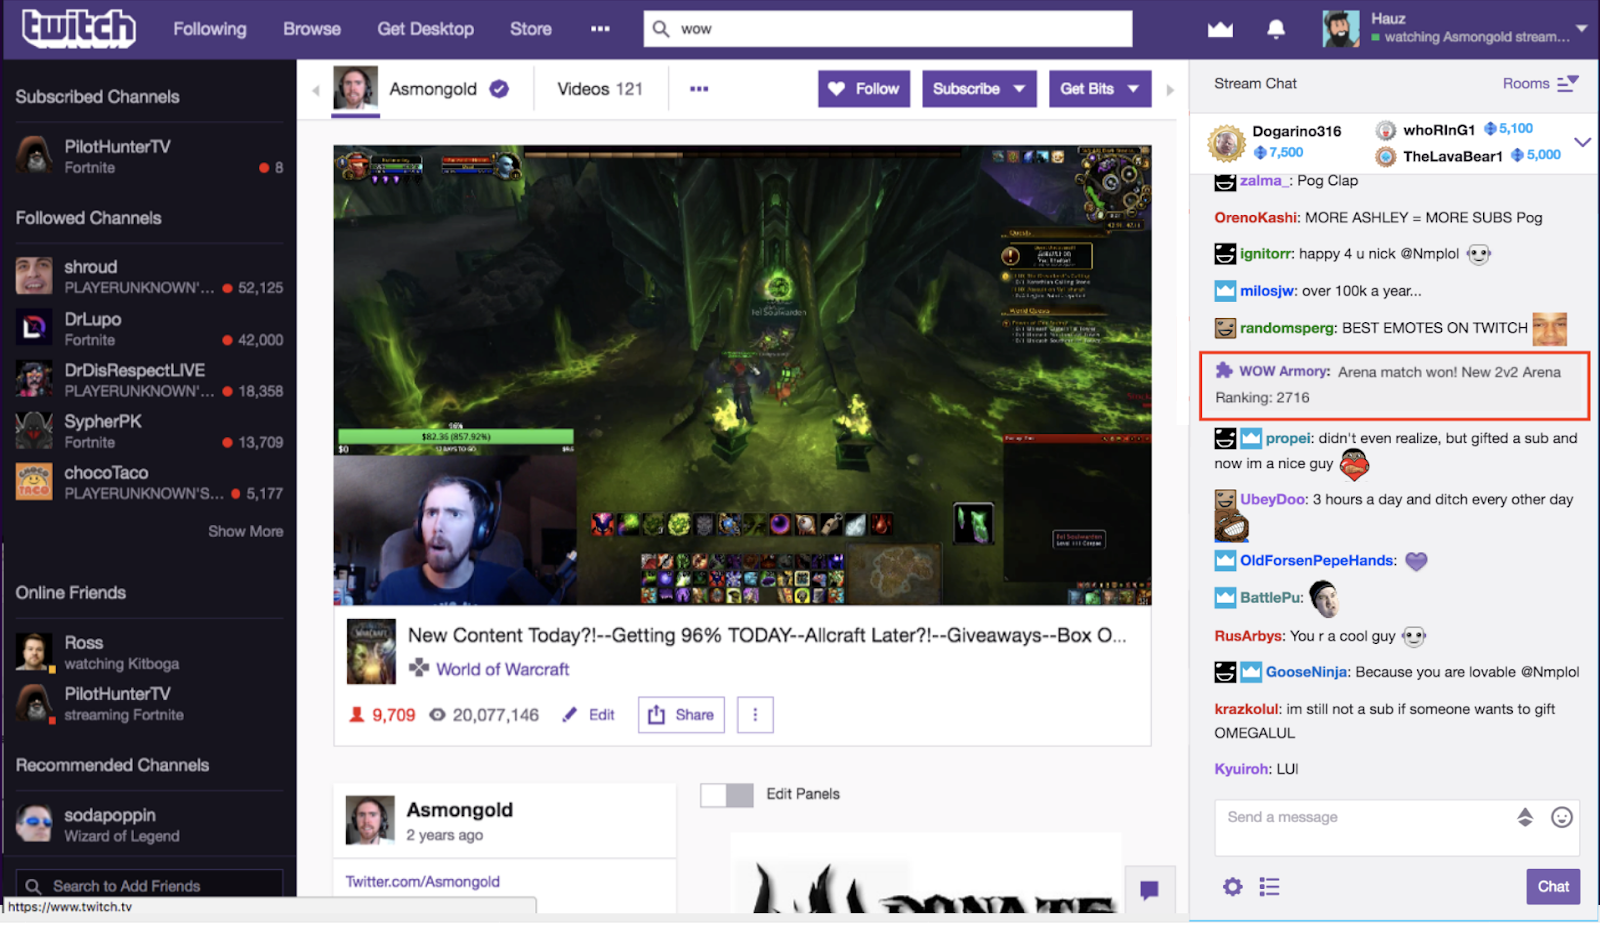 Extensions Capabilities in Twitch Chat - Twitch Blog